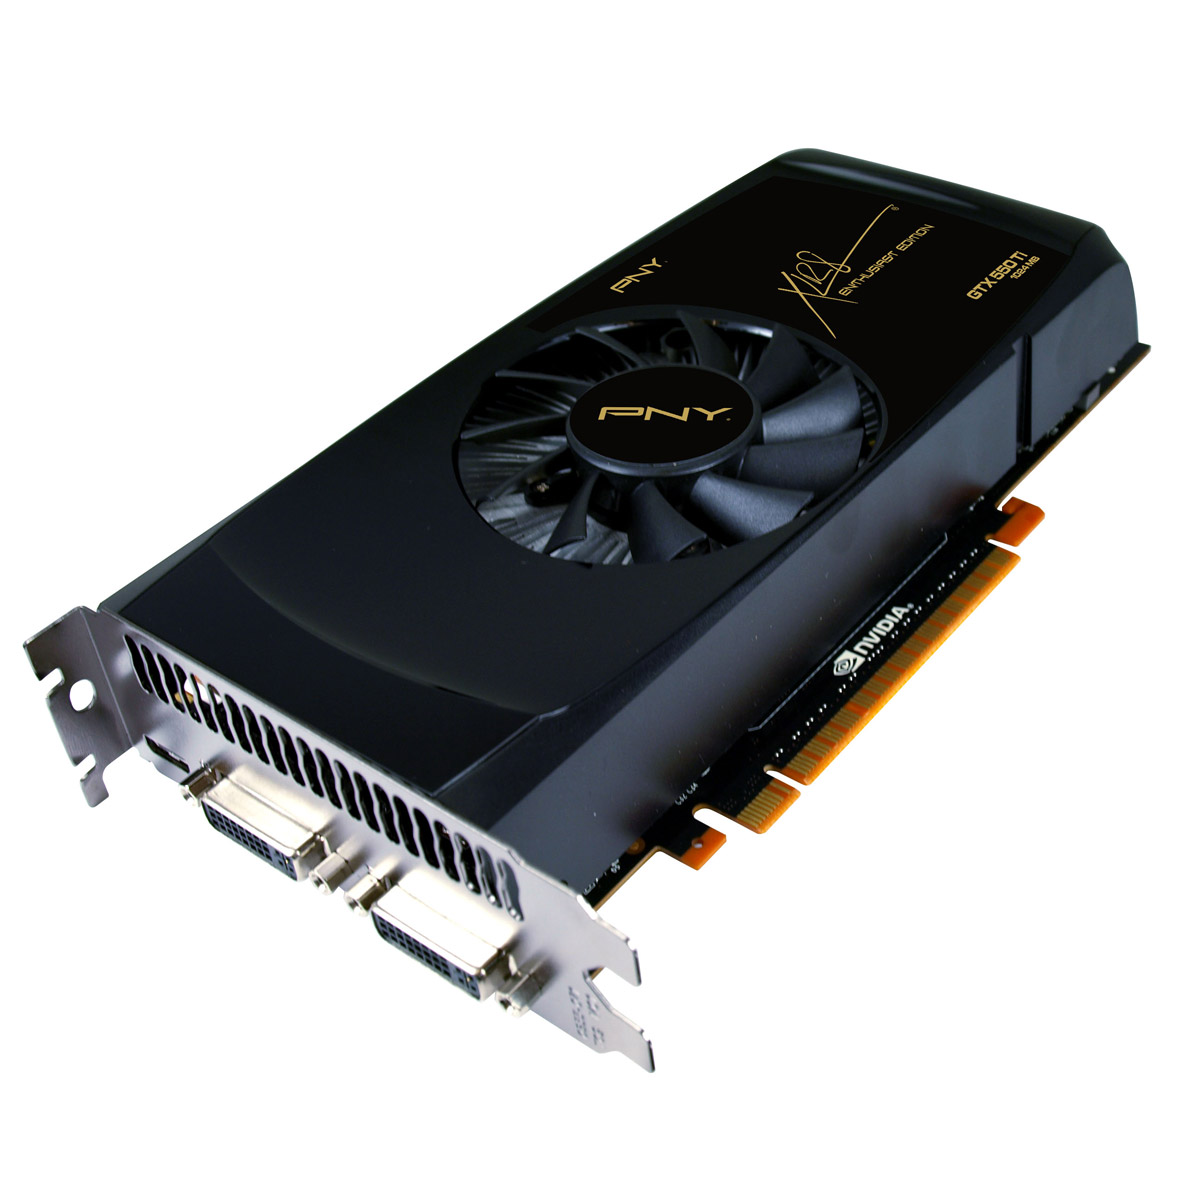 Carte graphique PNY GeForce GTX 550 Ti 1 GB 1024 Mo Dual DVI/Mini HDMI - PCI Express (NVIDIA GeForce avec CUDA GTX 550 Ti)